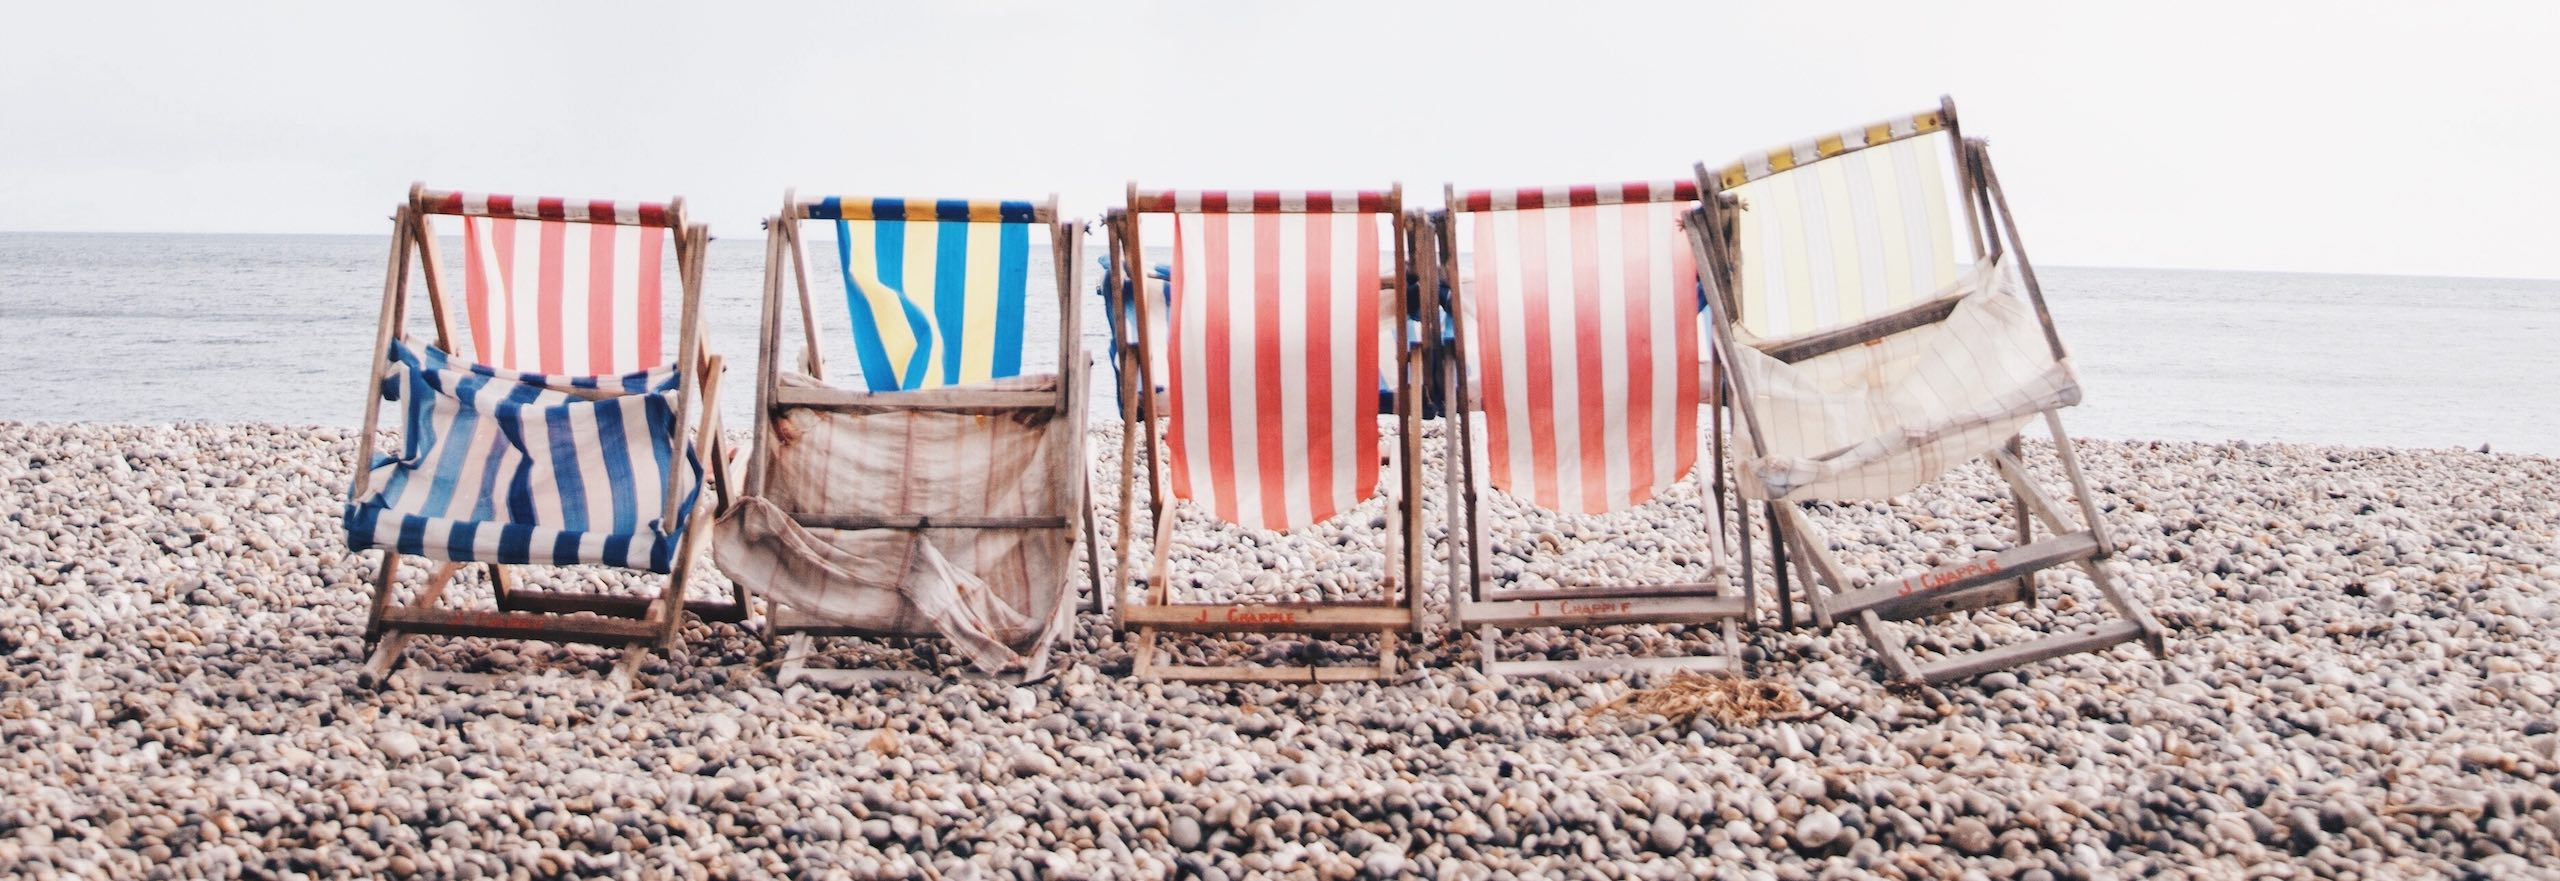 Five stripy deck chairs on the beach with the sea in the background